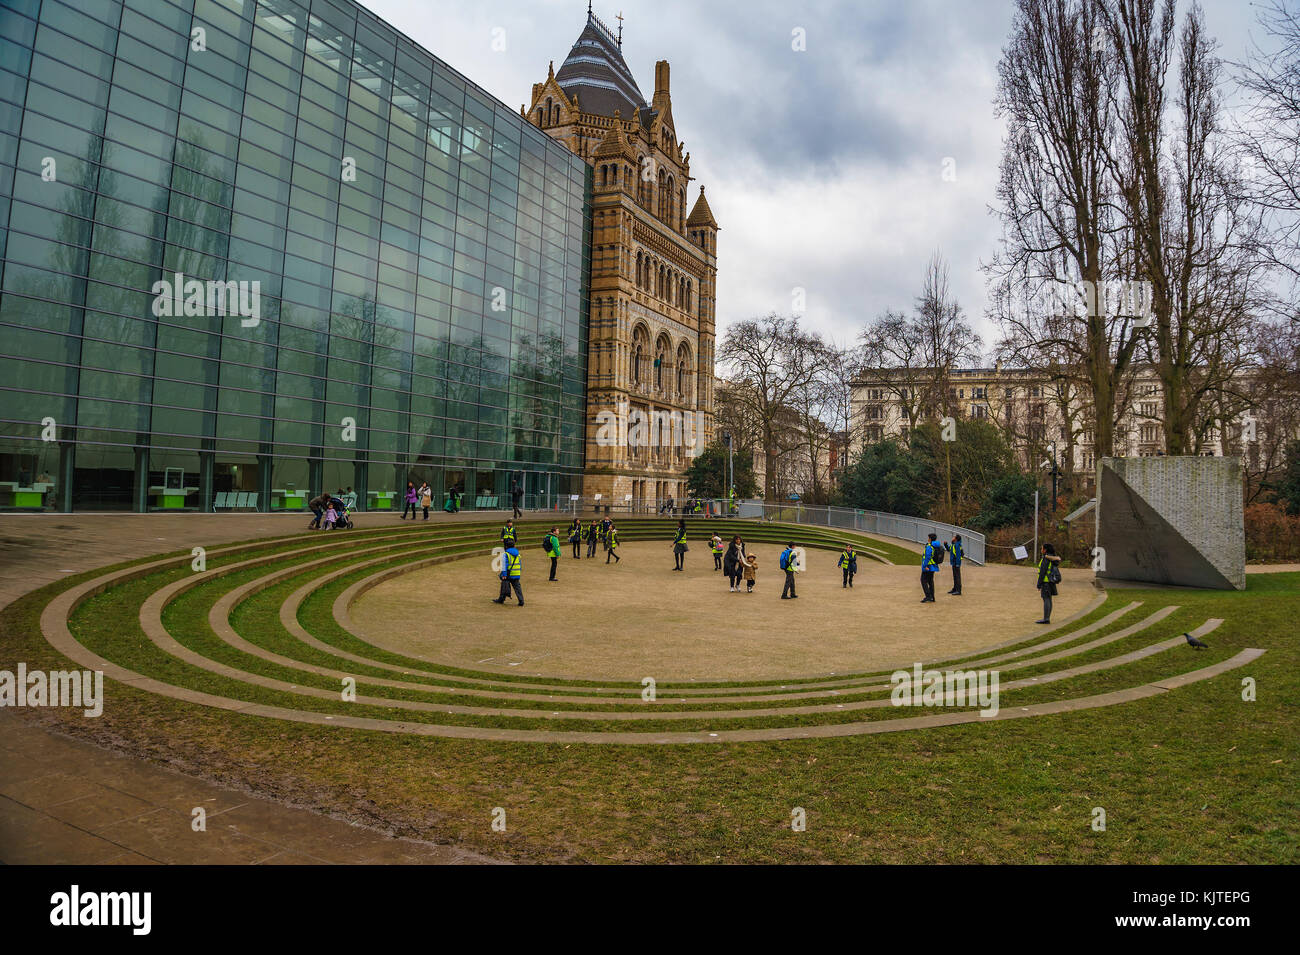 The Natural History Museum. Established in 1881, the museum houses 80 million items from around the world. London, - Stock Image